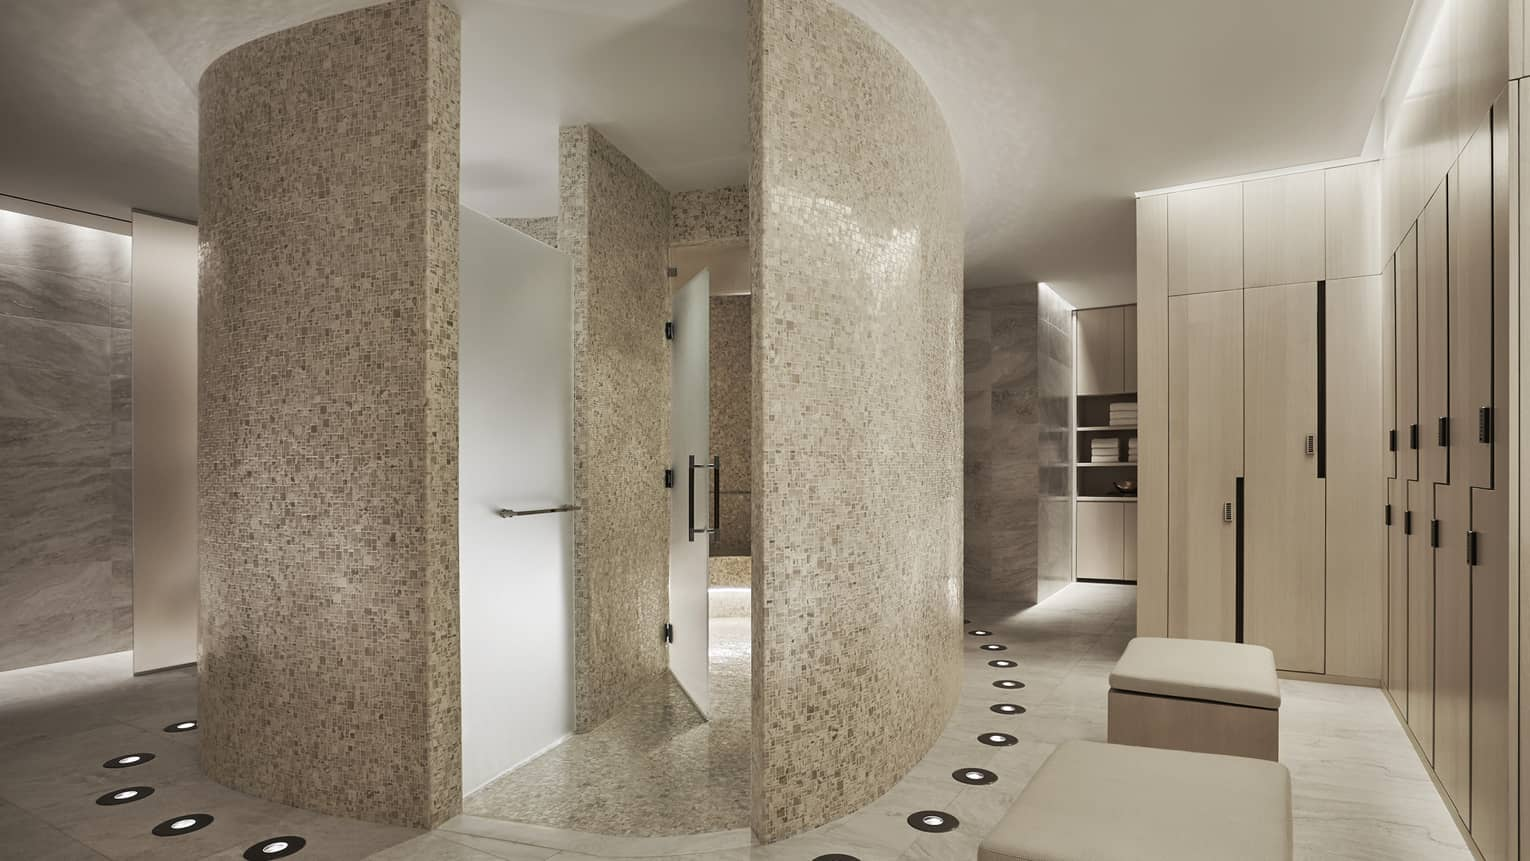 Curved white stone walls in Spa locker room, wood lockers